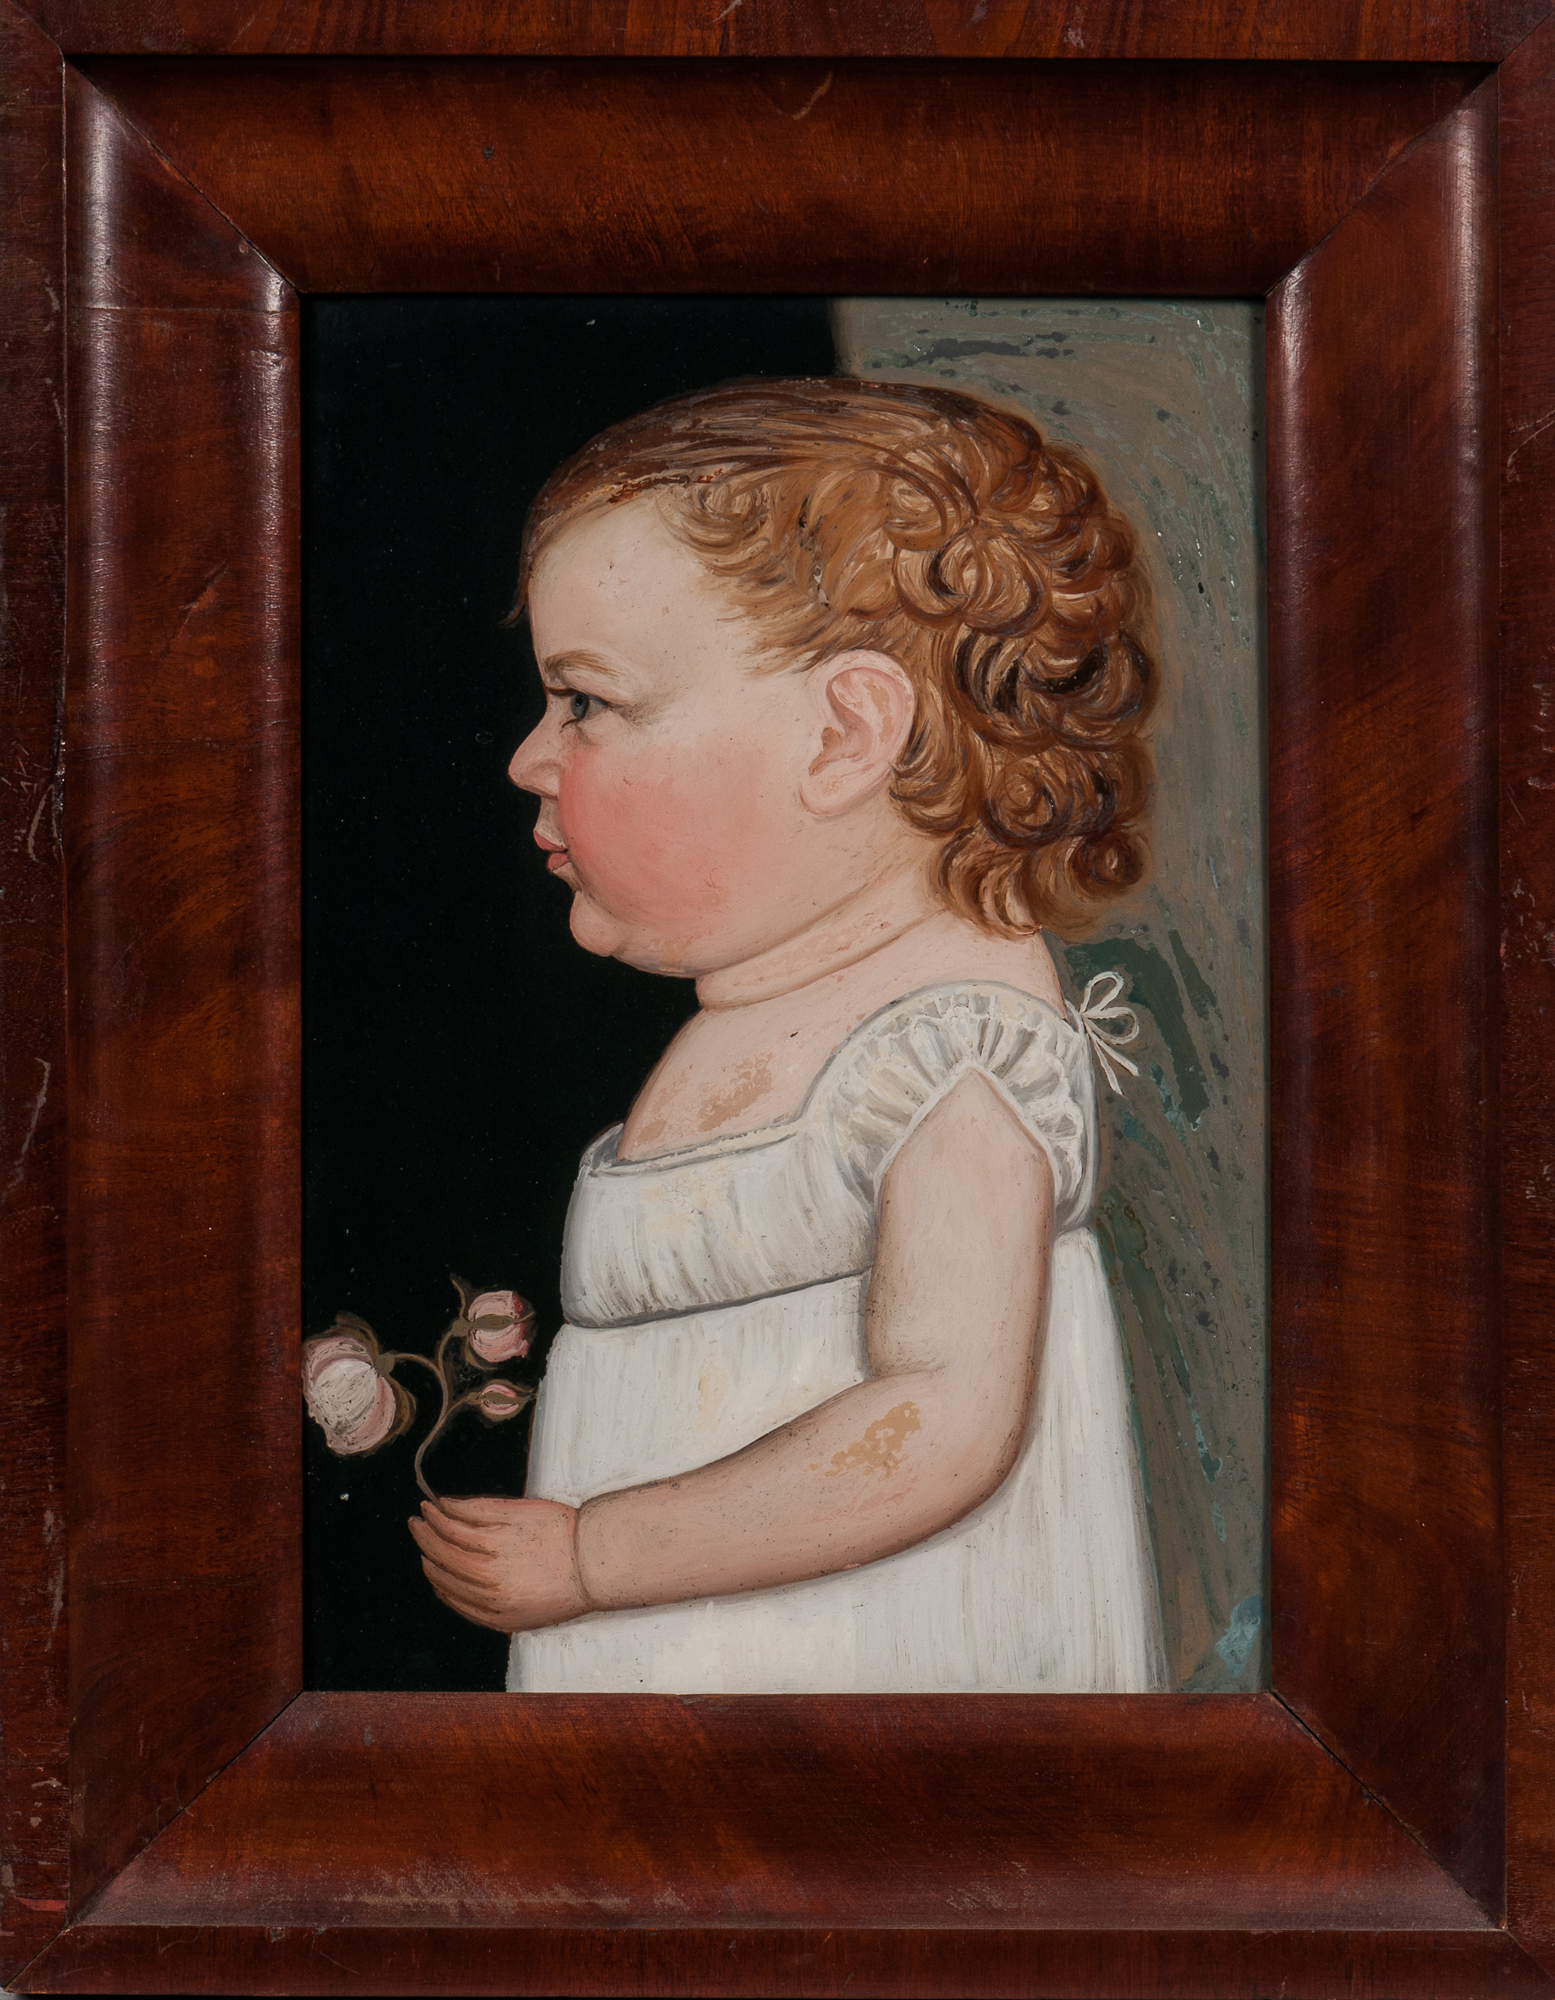 Benjamin Greenleaf (Massachusetts/New Hampshire, 1769-1821) Portrait of a Baby Girl (Lot 124, Estimate: $6,000-8,000)